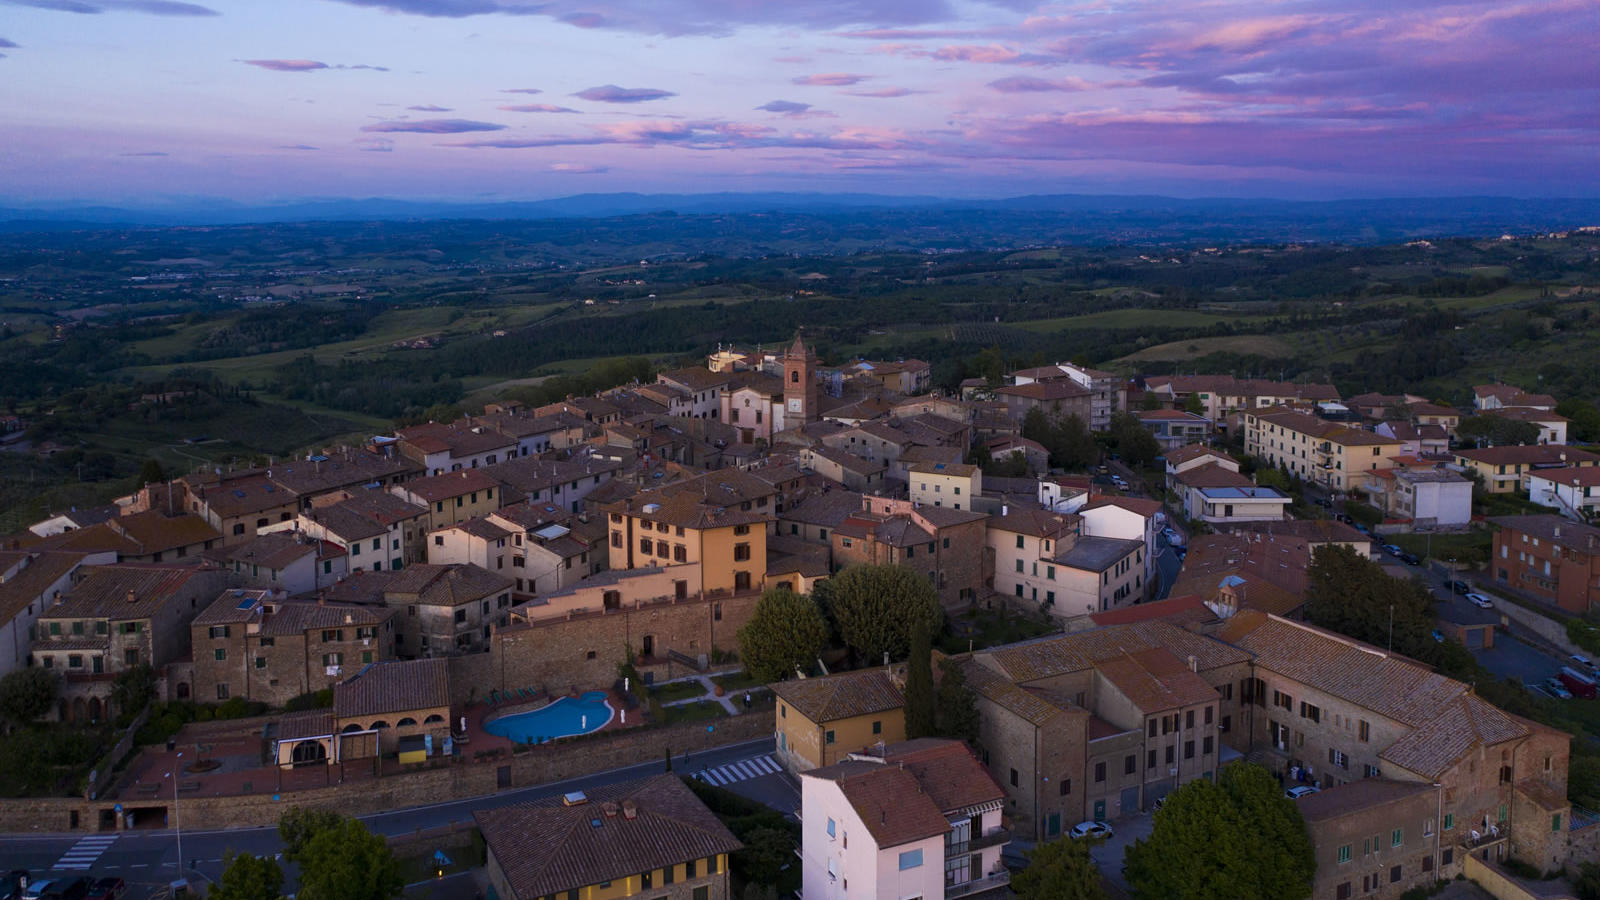 ariel view of hotel and surrounding town Unahotels Palazzo Mannaioni Toscana